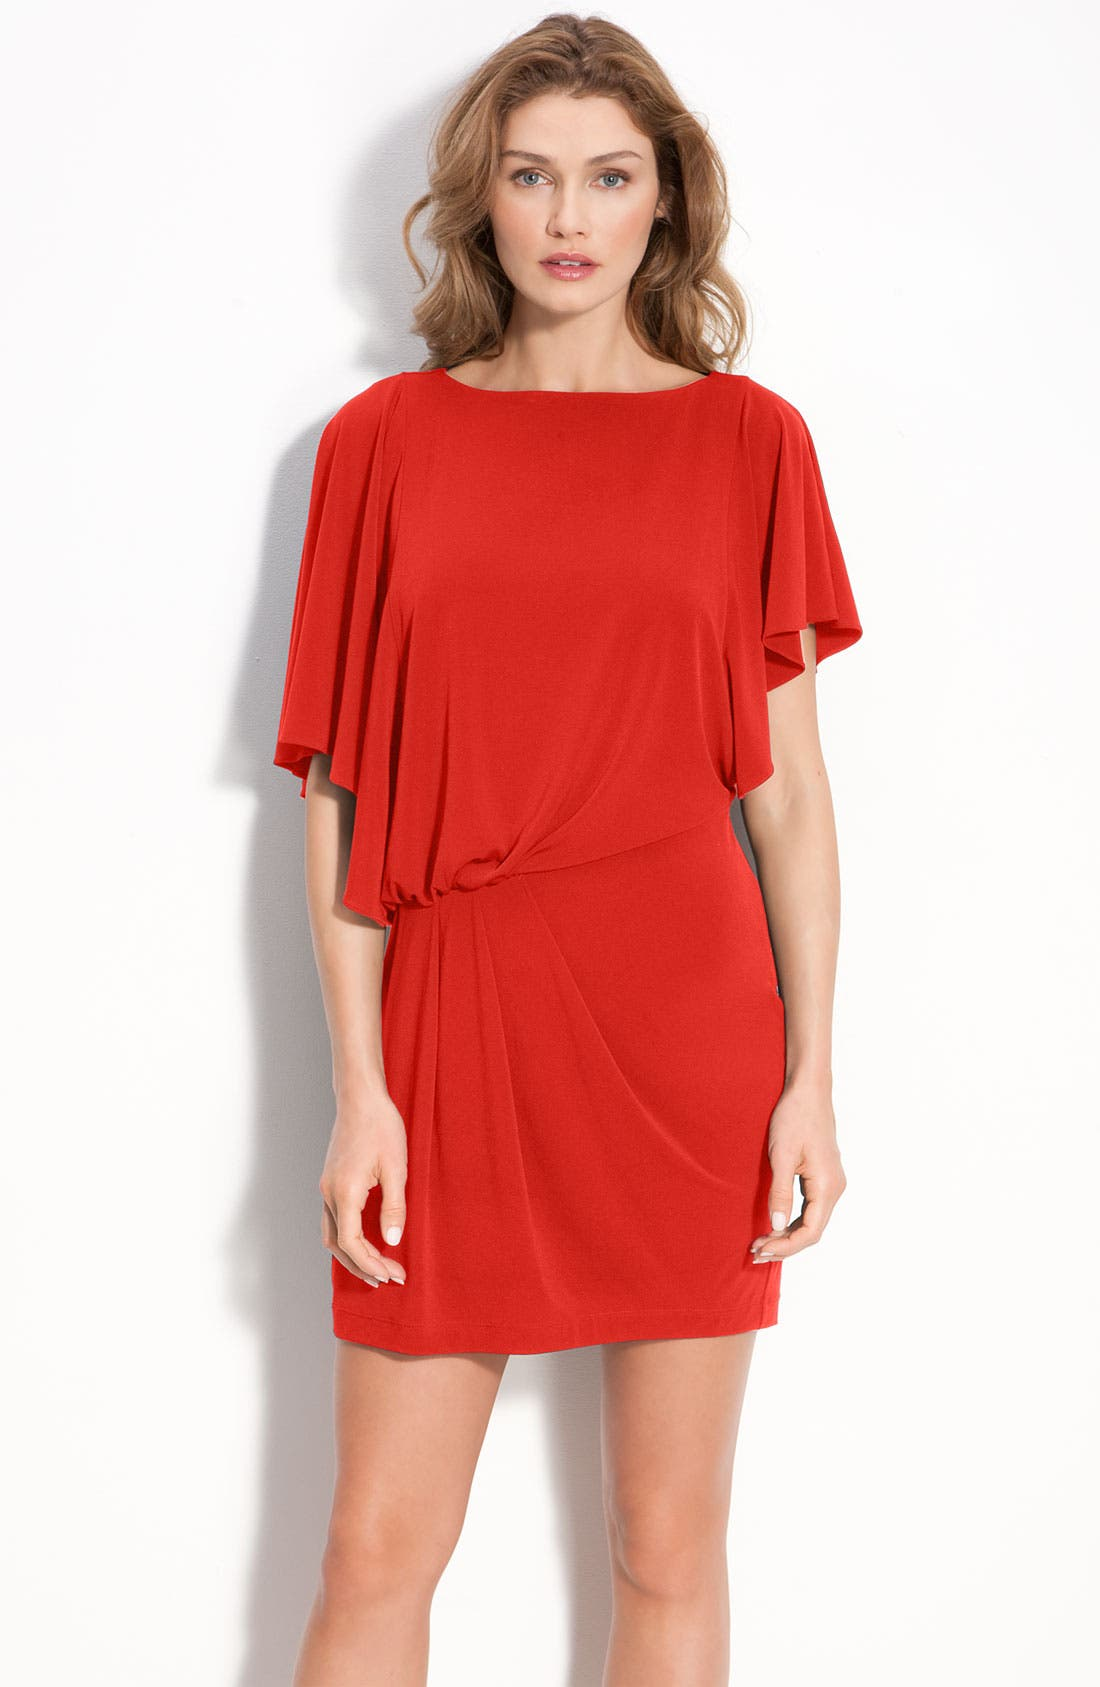 Alternate Image 1 Selected - Vince Camuto Asymmetrical Jersey Dress